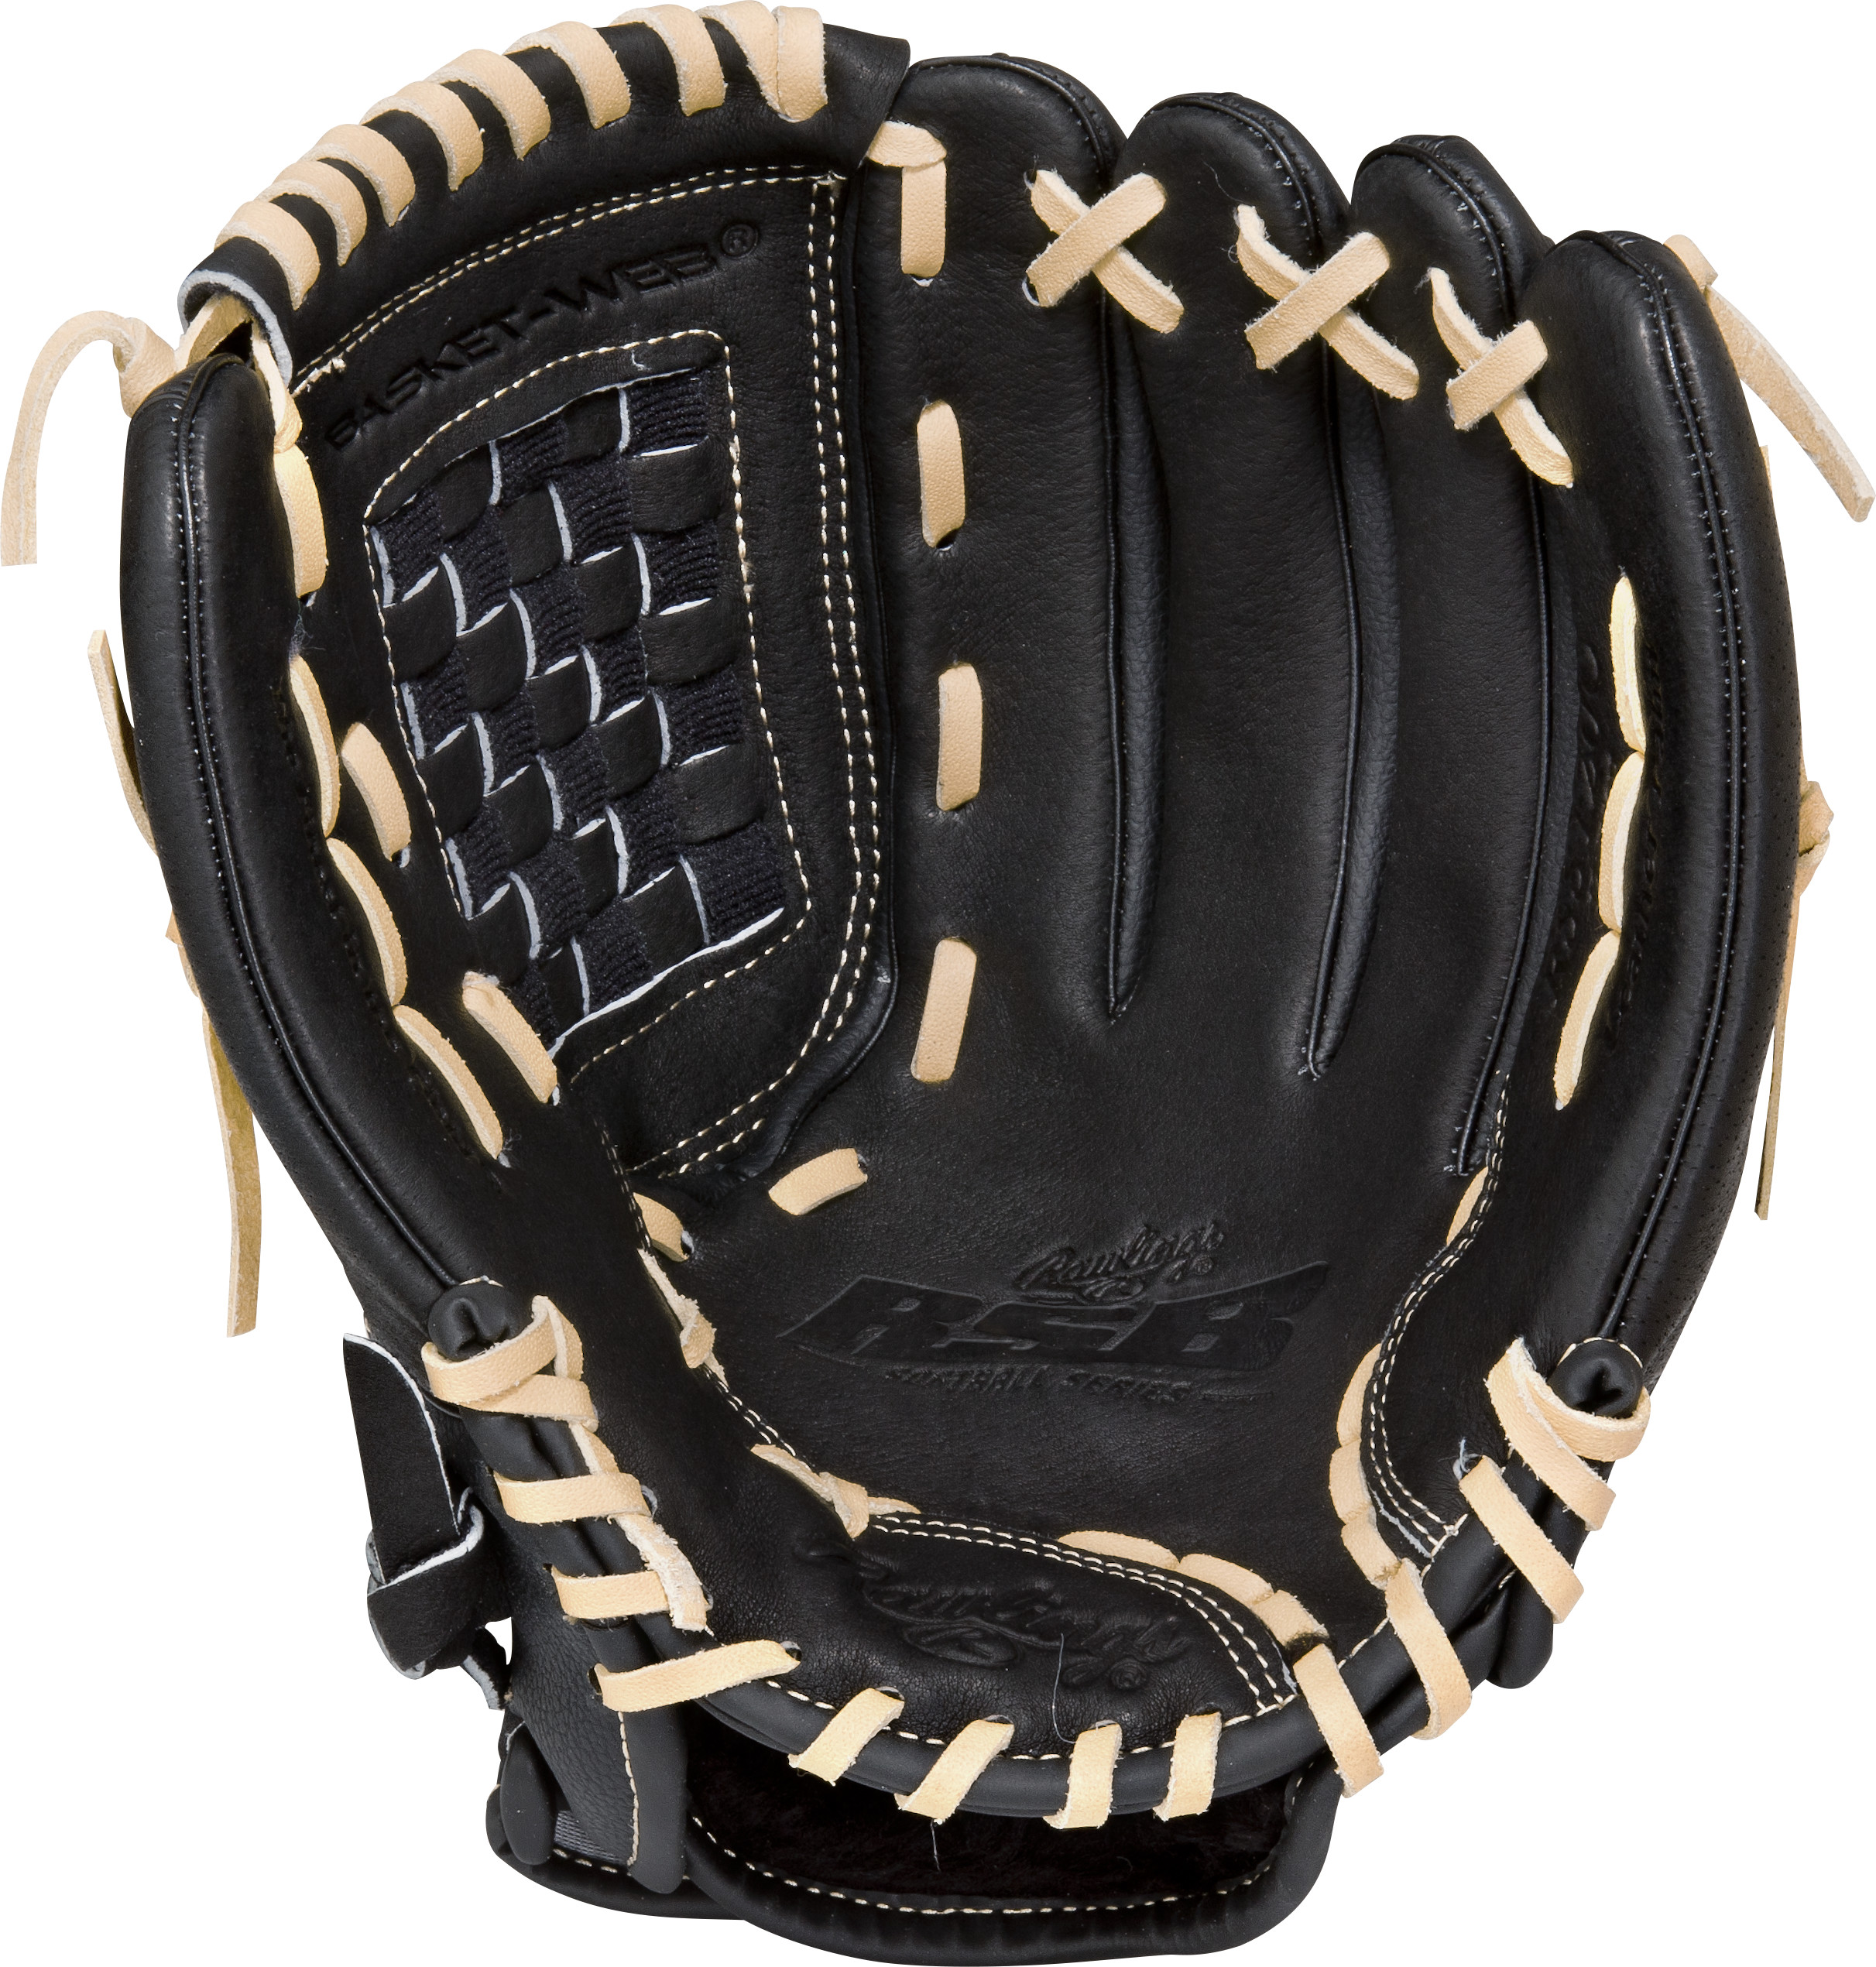 http://www.bestbatdeals.com/images/gloves/rawlings/RSS120C_palm.jpg